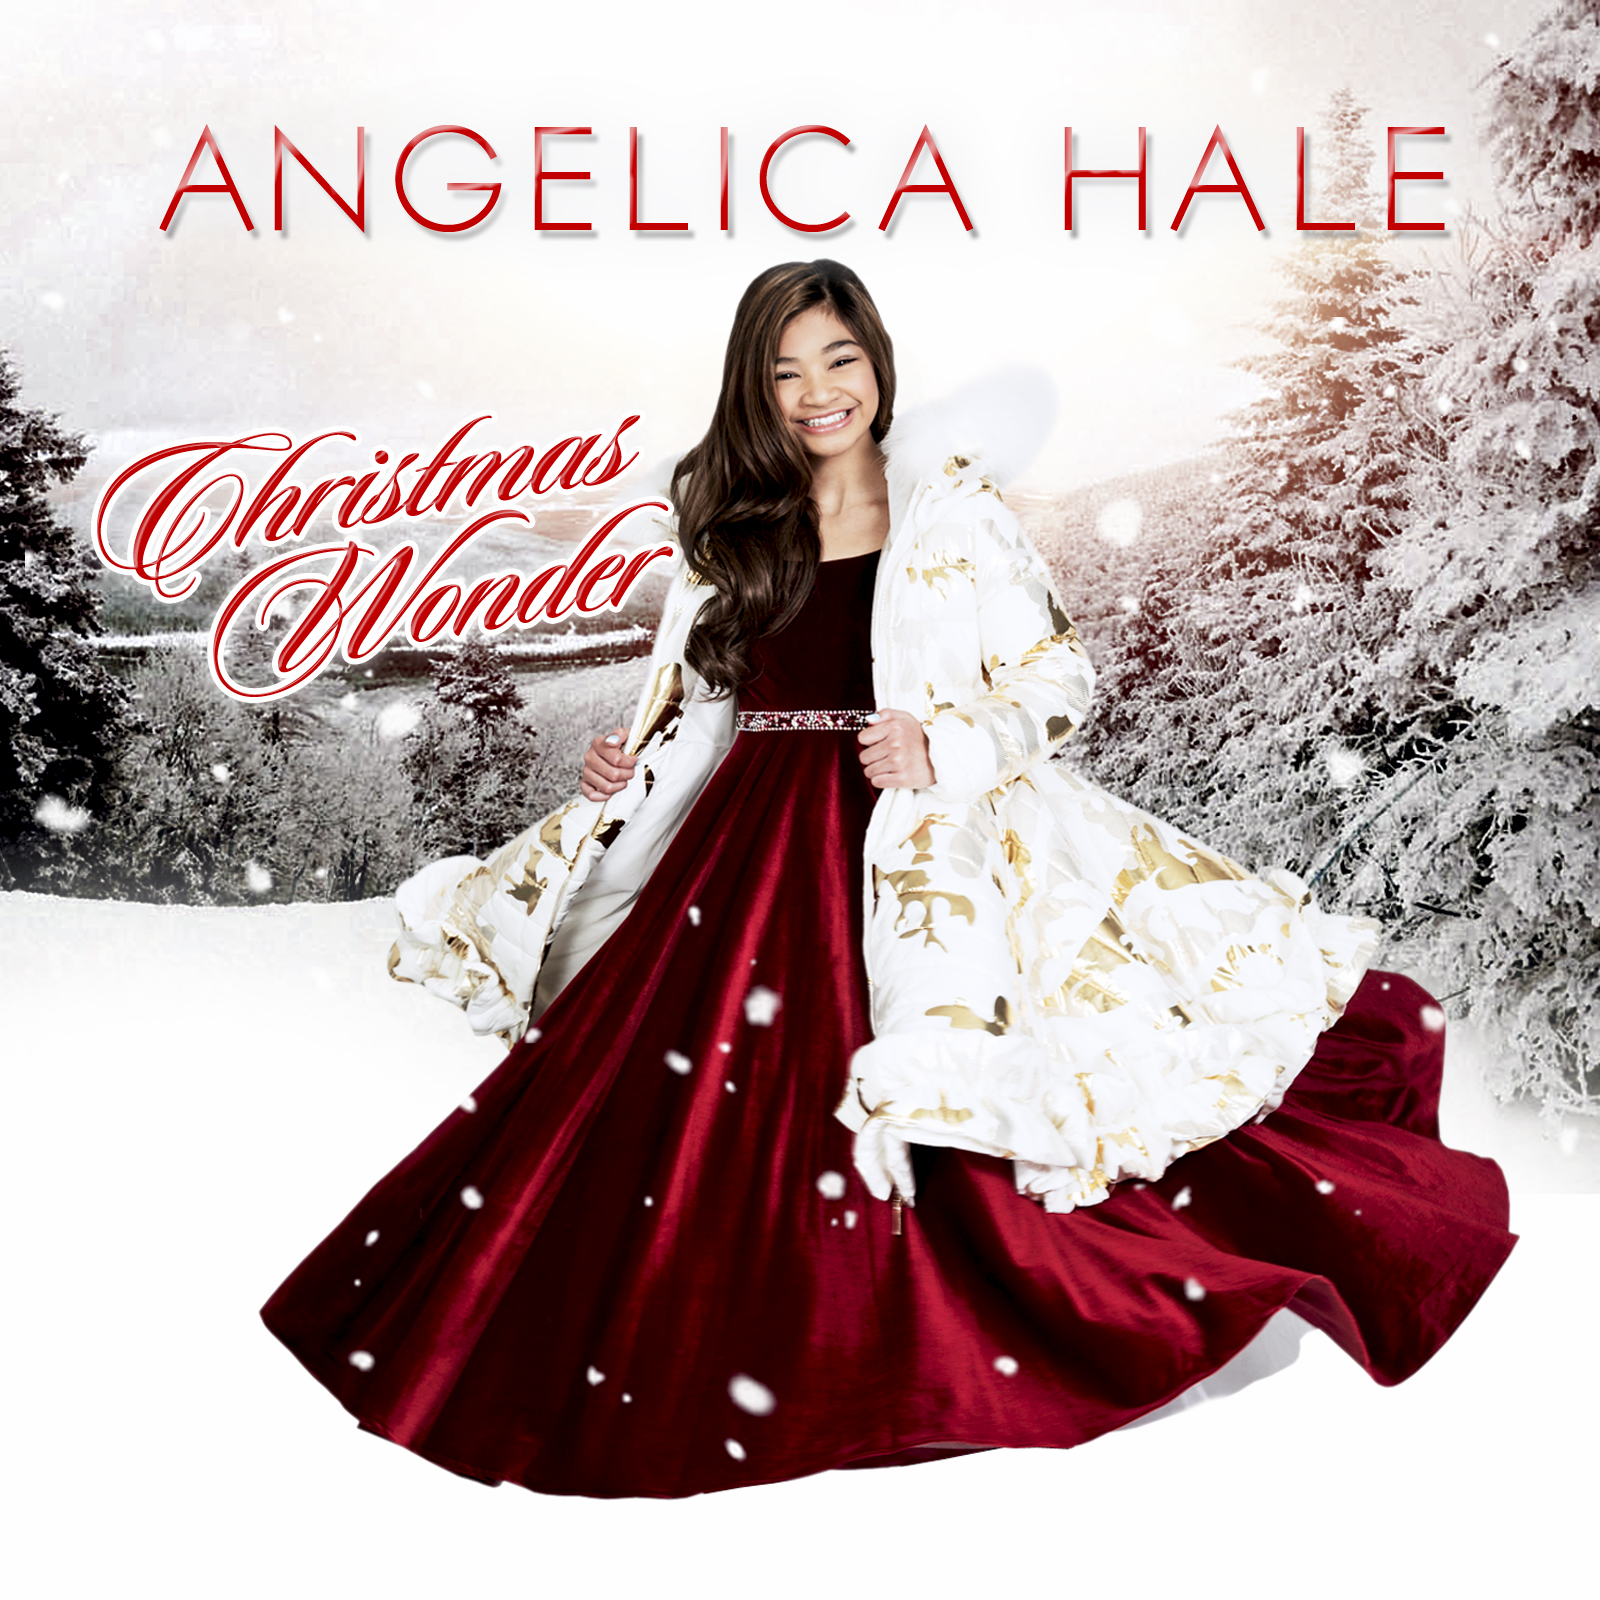 Christmas Wonder - Angelica Hale